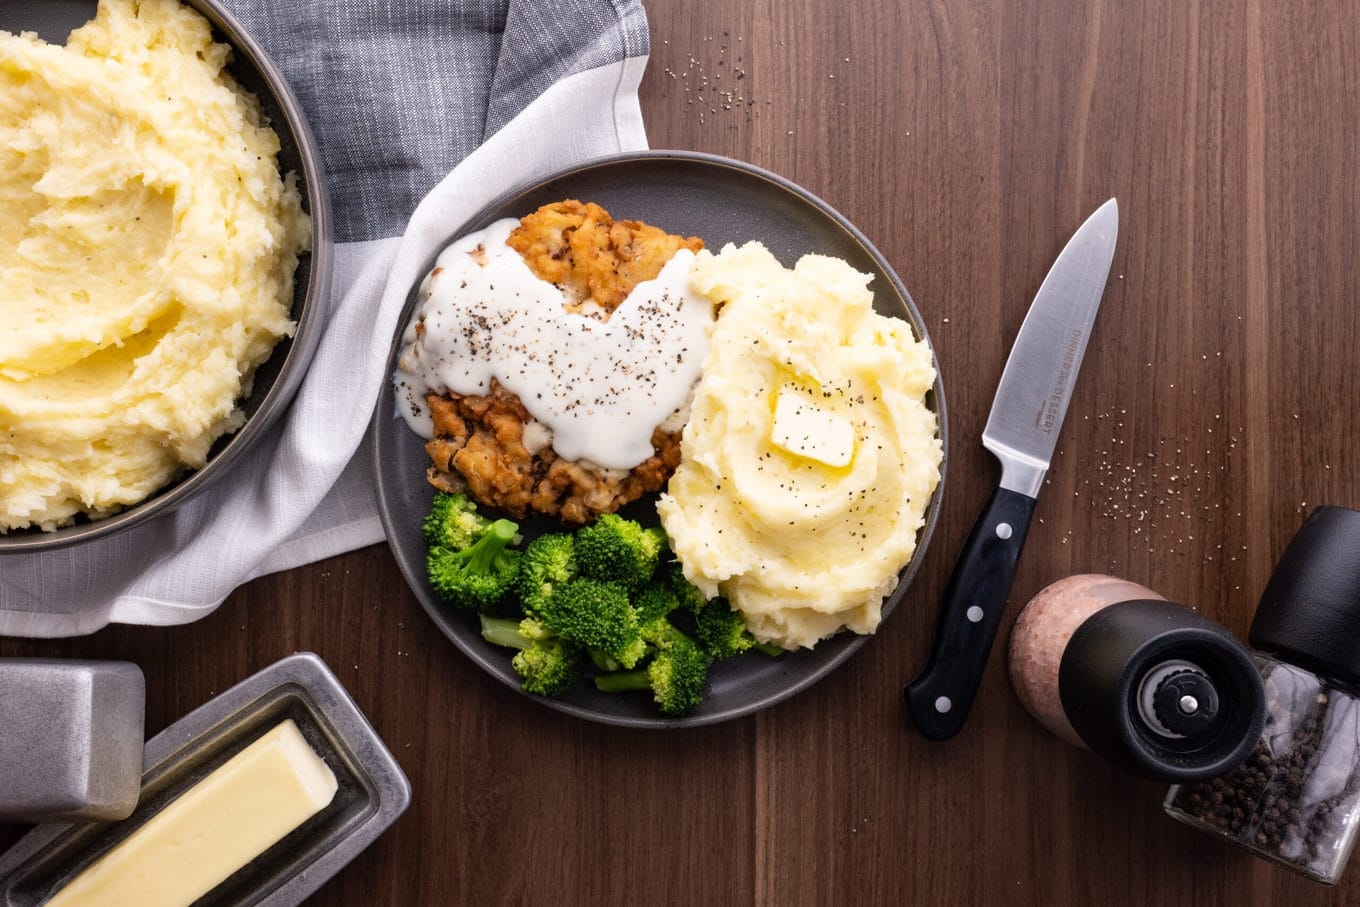 Easy Mashed Potatoes on plate with broccoli and chicken fried steak with gravy